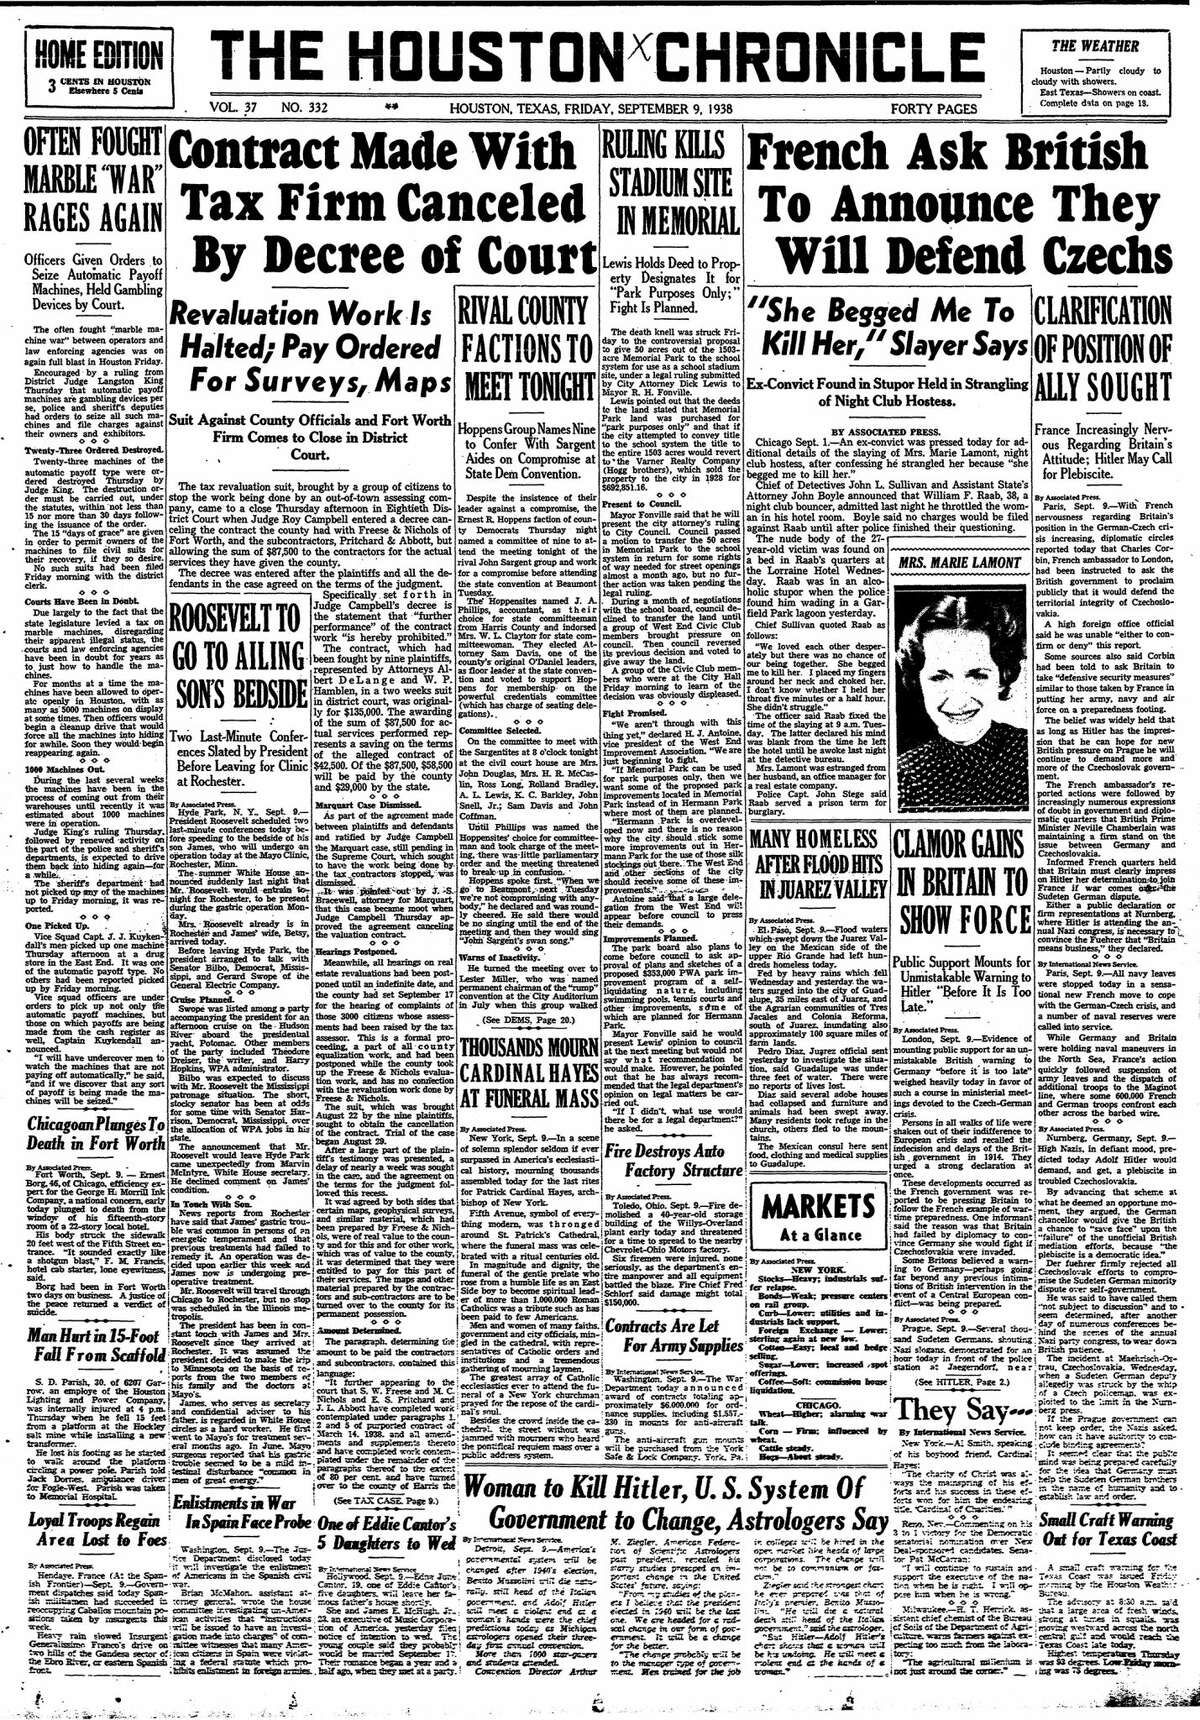 Houston Chronicle front page from Sept. 9, 1938.